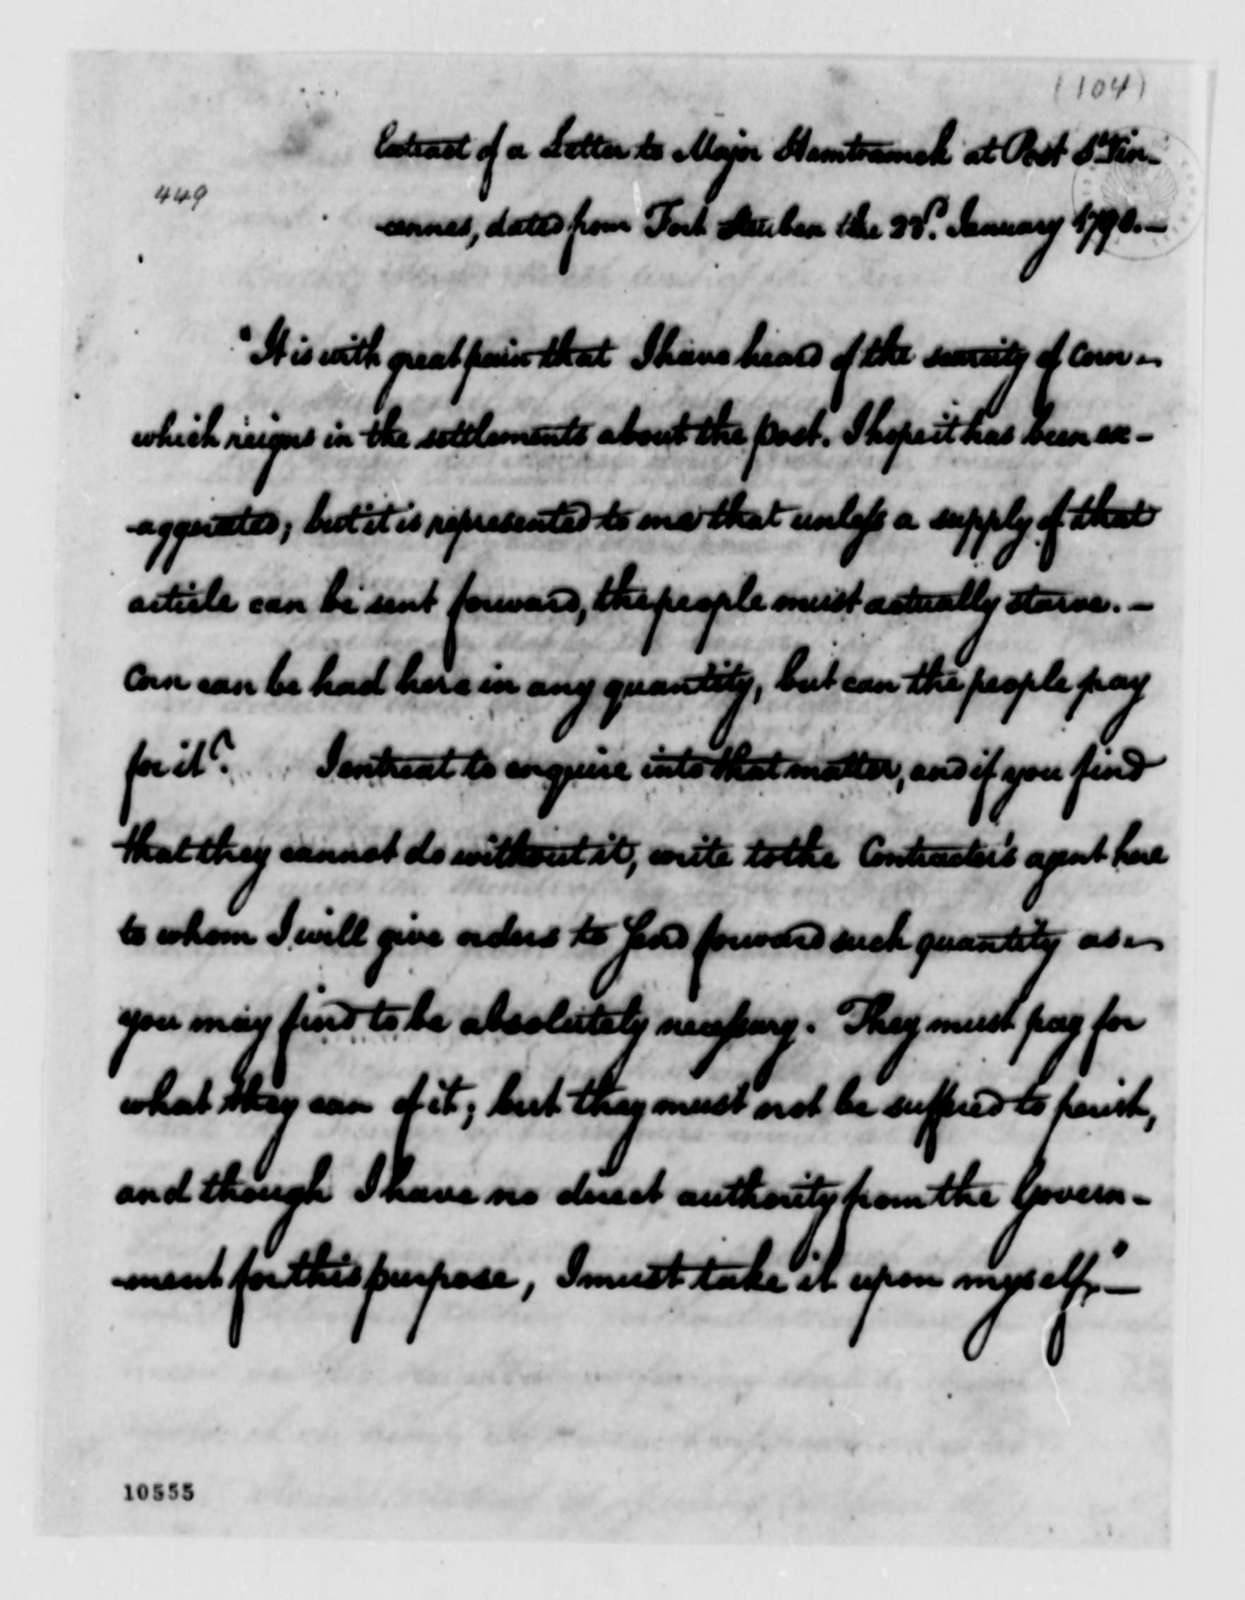 Thomas Jefferson to George Washington, February 17, 1791, Report with Extracts on Northwest Territory